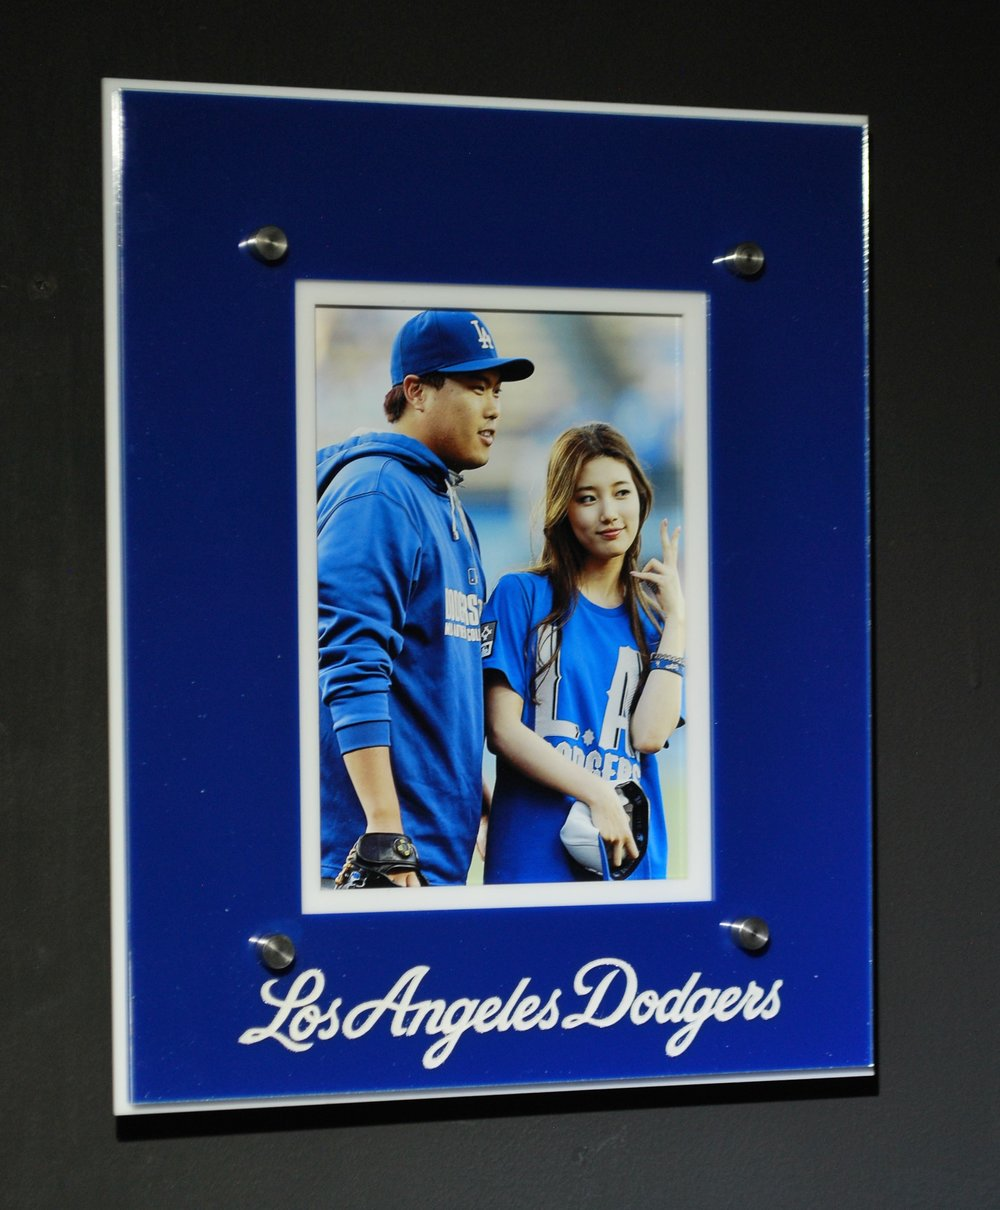 5x7 portrait frame - 5-layer acrylic, in team colors, color-enhanced team text imagery  Contact us for pricing information.